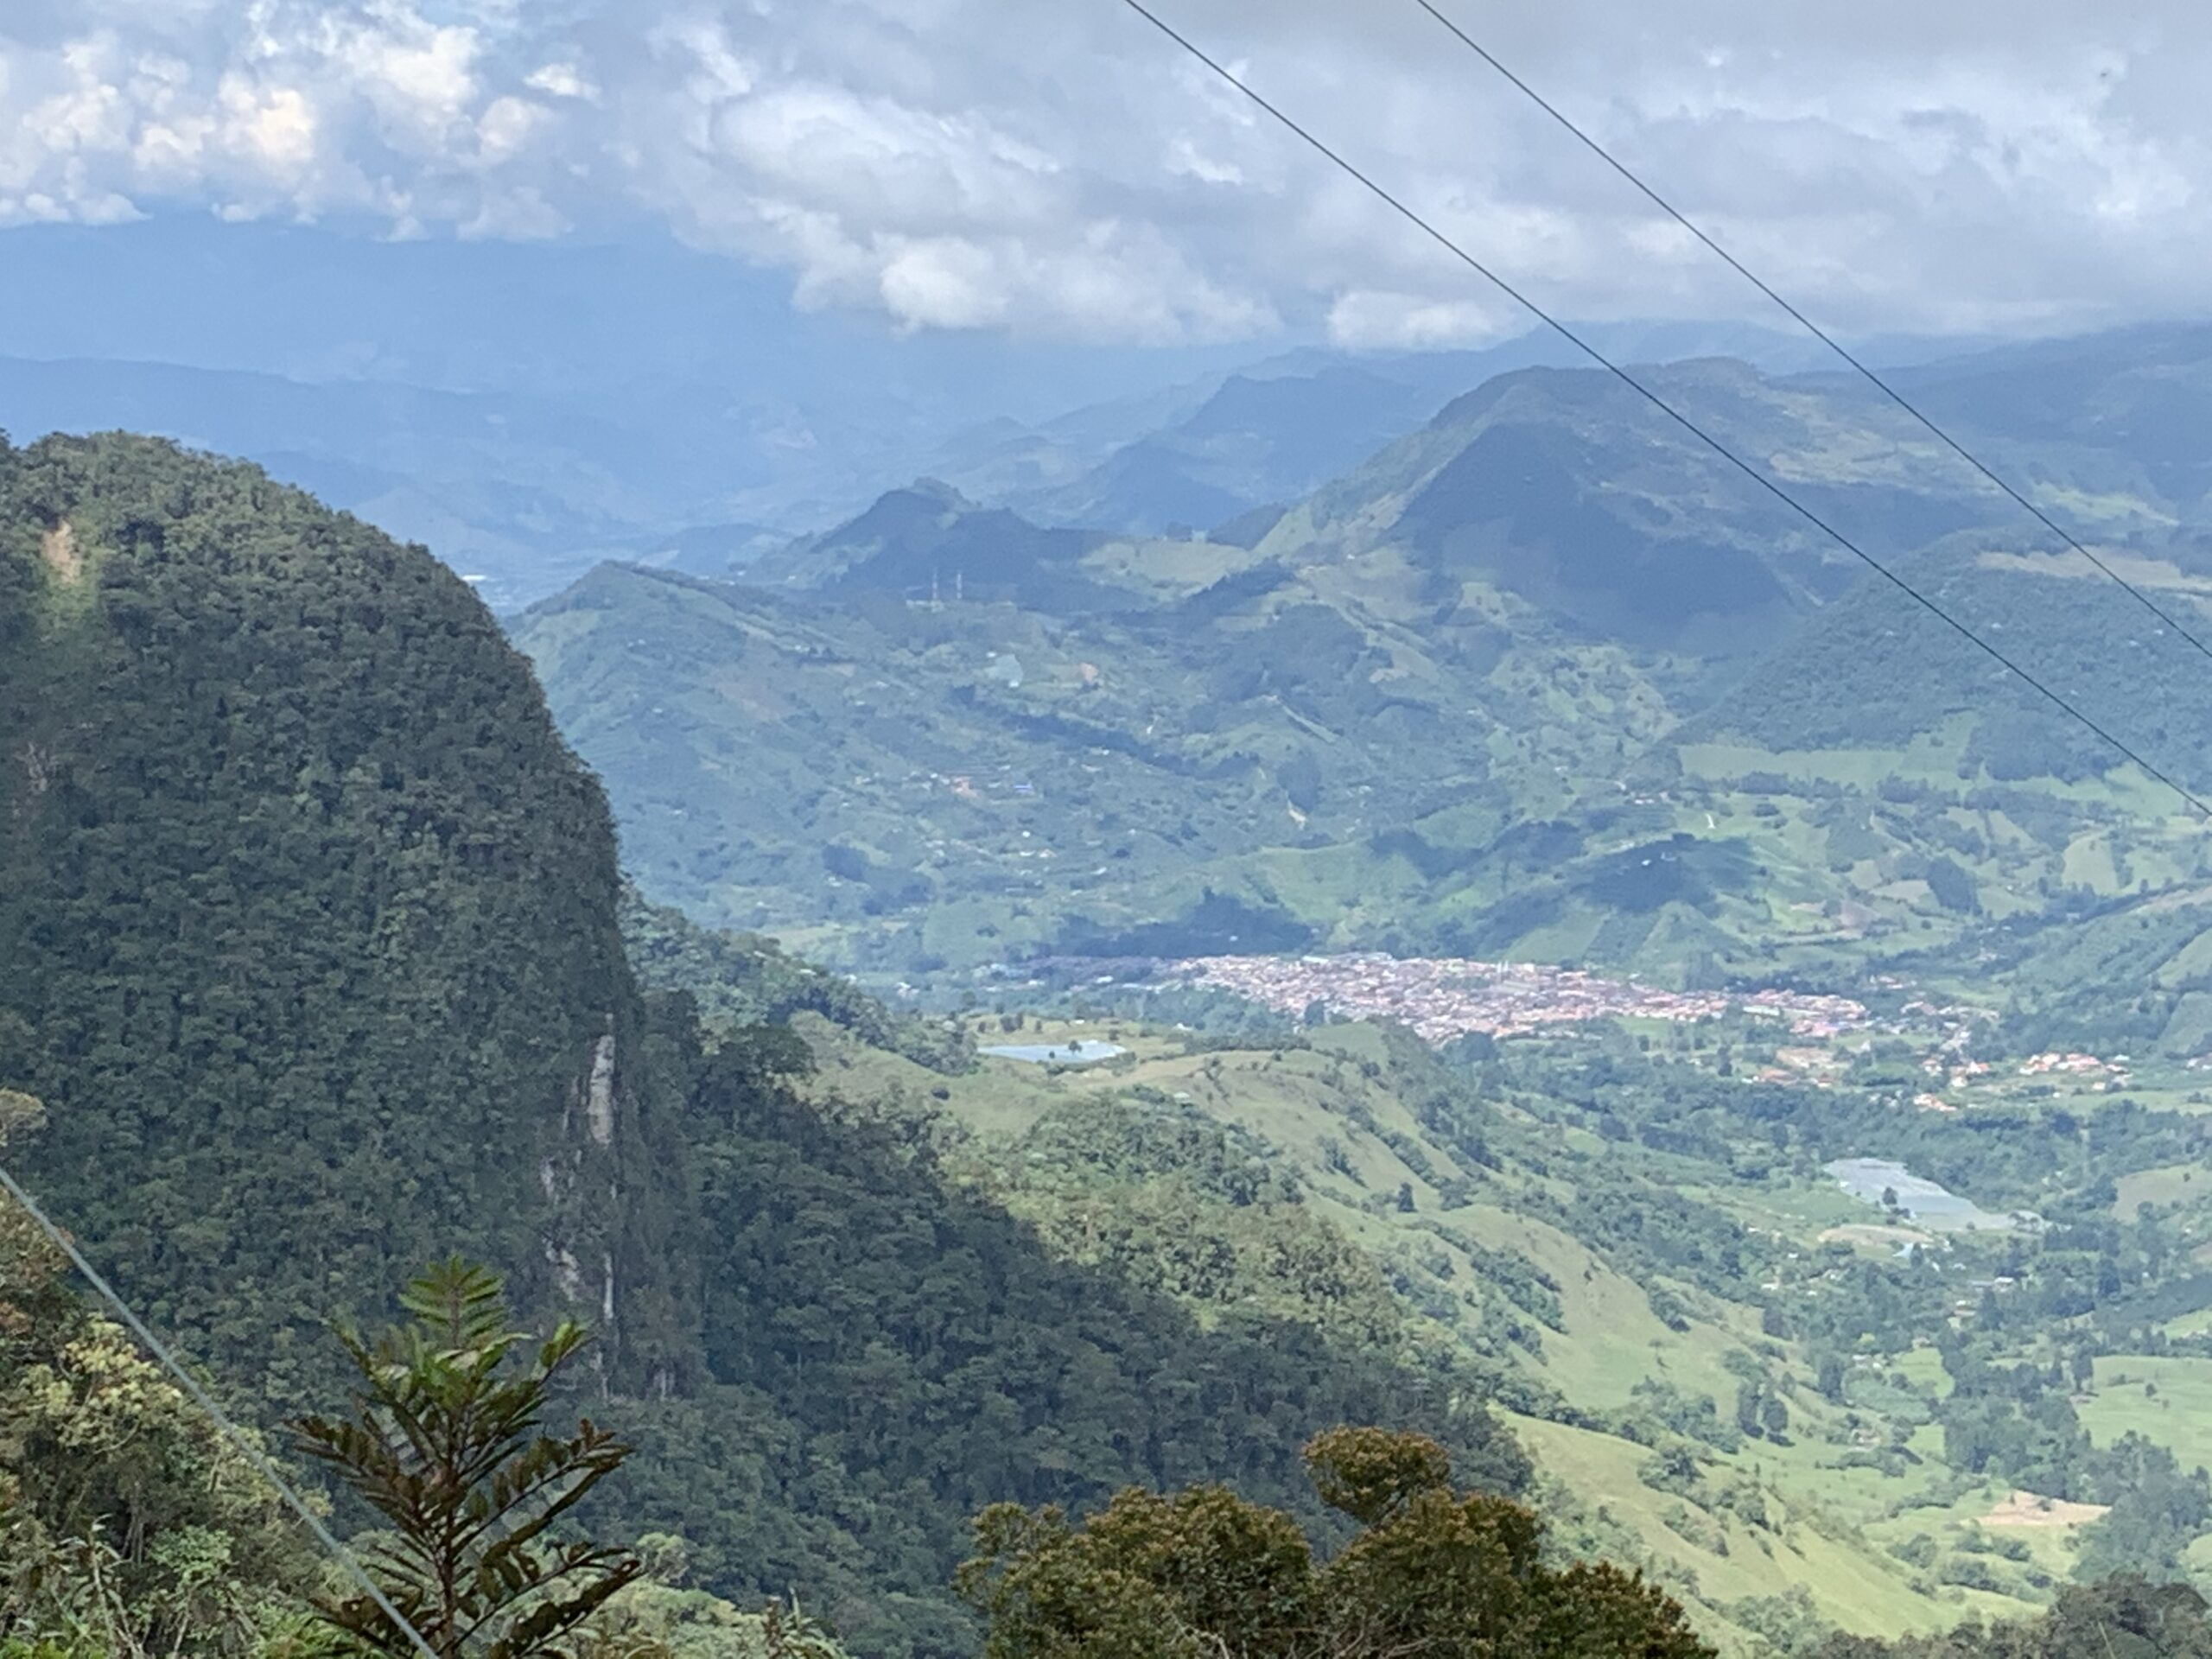 Views of Jardin Antioquia from above the coffee farms